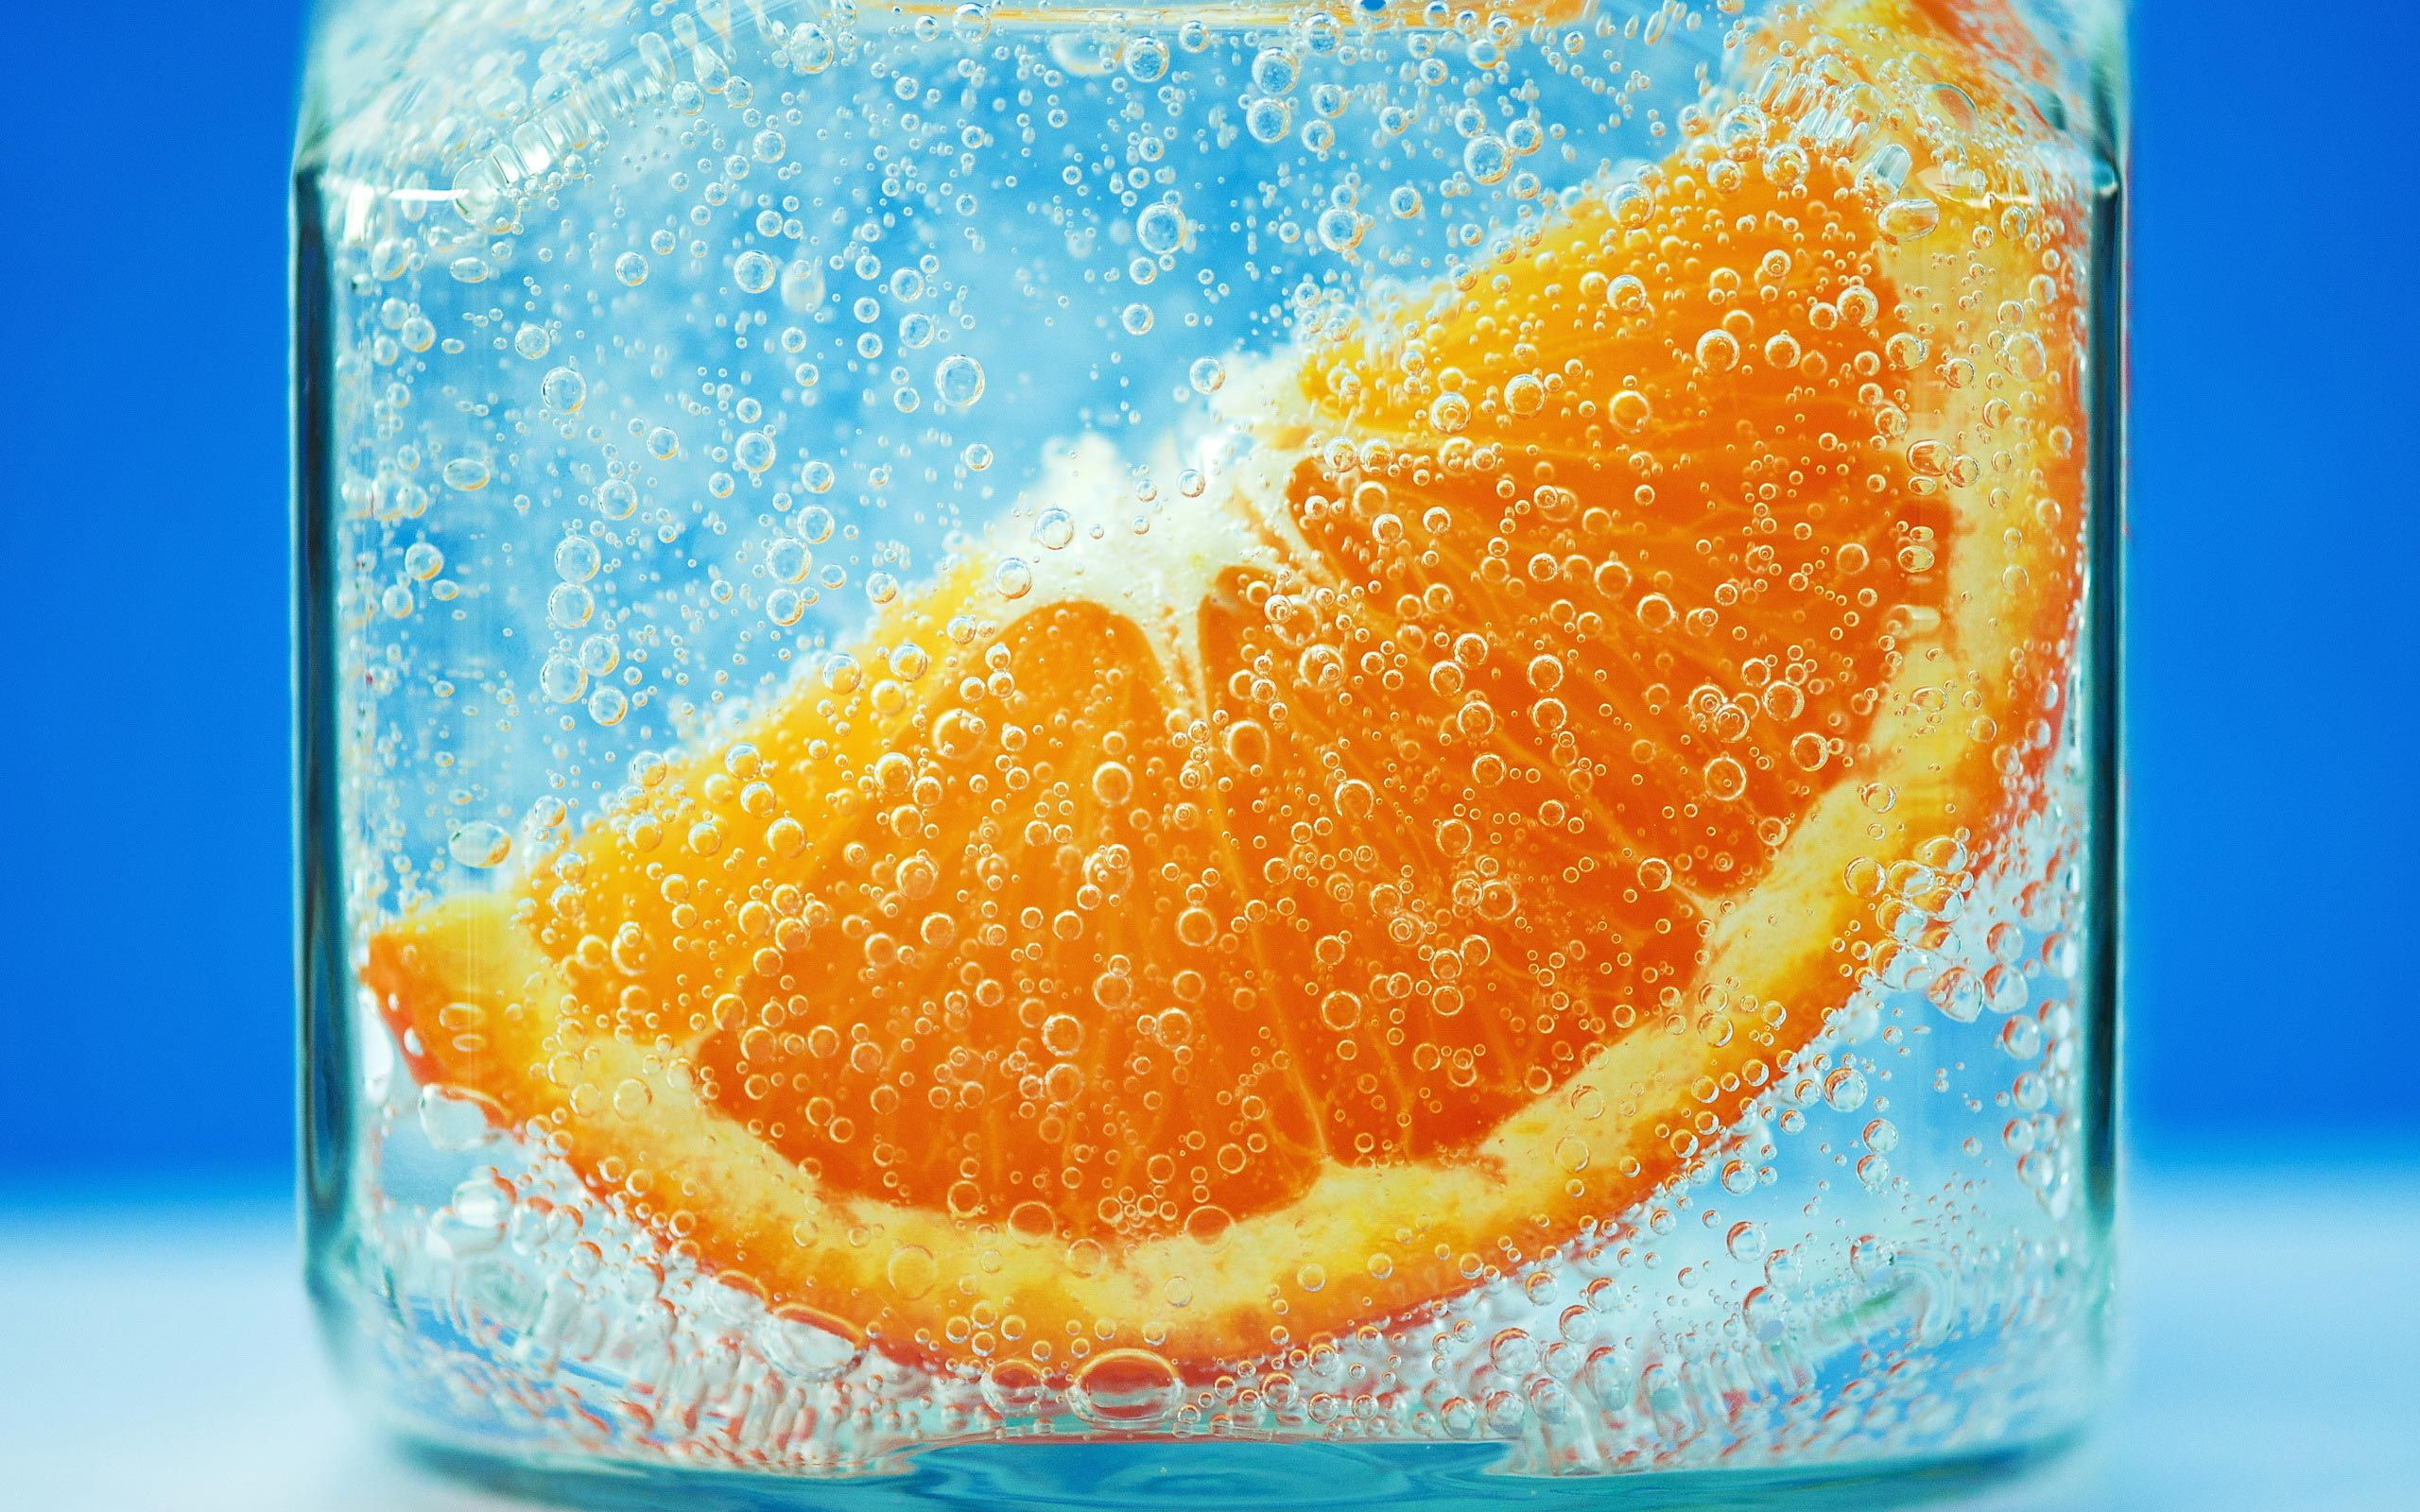 Fresh Orange Wallpapers Very Attractive And Heart Interesting Now You Can Download Free For Mobiles And Computers Laptop Ba Fruit Fruit Wallpaper Orange Slices